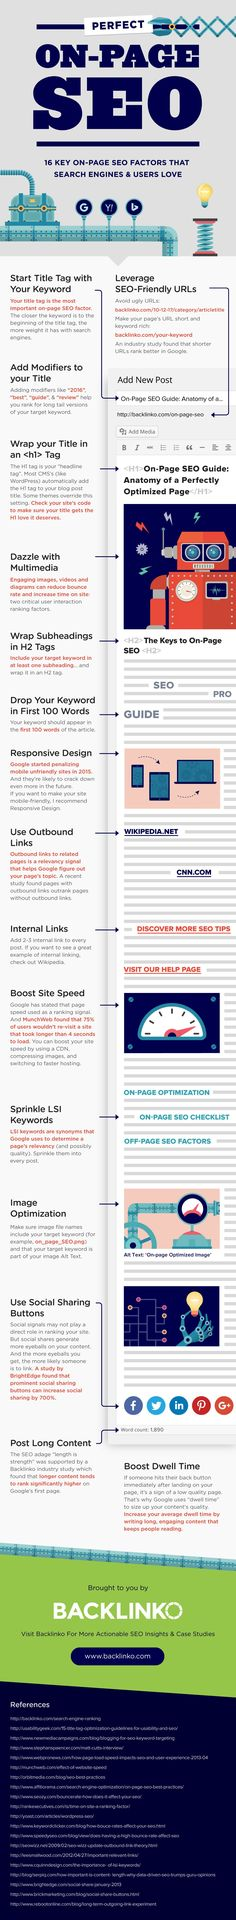 An insanely large infographic that's chock full of useful information...from @backlinko.com Analisamos os 150 Melhores Templates WordPress e colocamos tudo neste E-Book dividido por 15 categorias e nichos de mercado. Download GRATUITO em http://www.estrategiadigital.pt/150-melhores-templates-wordpress/